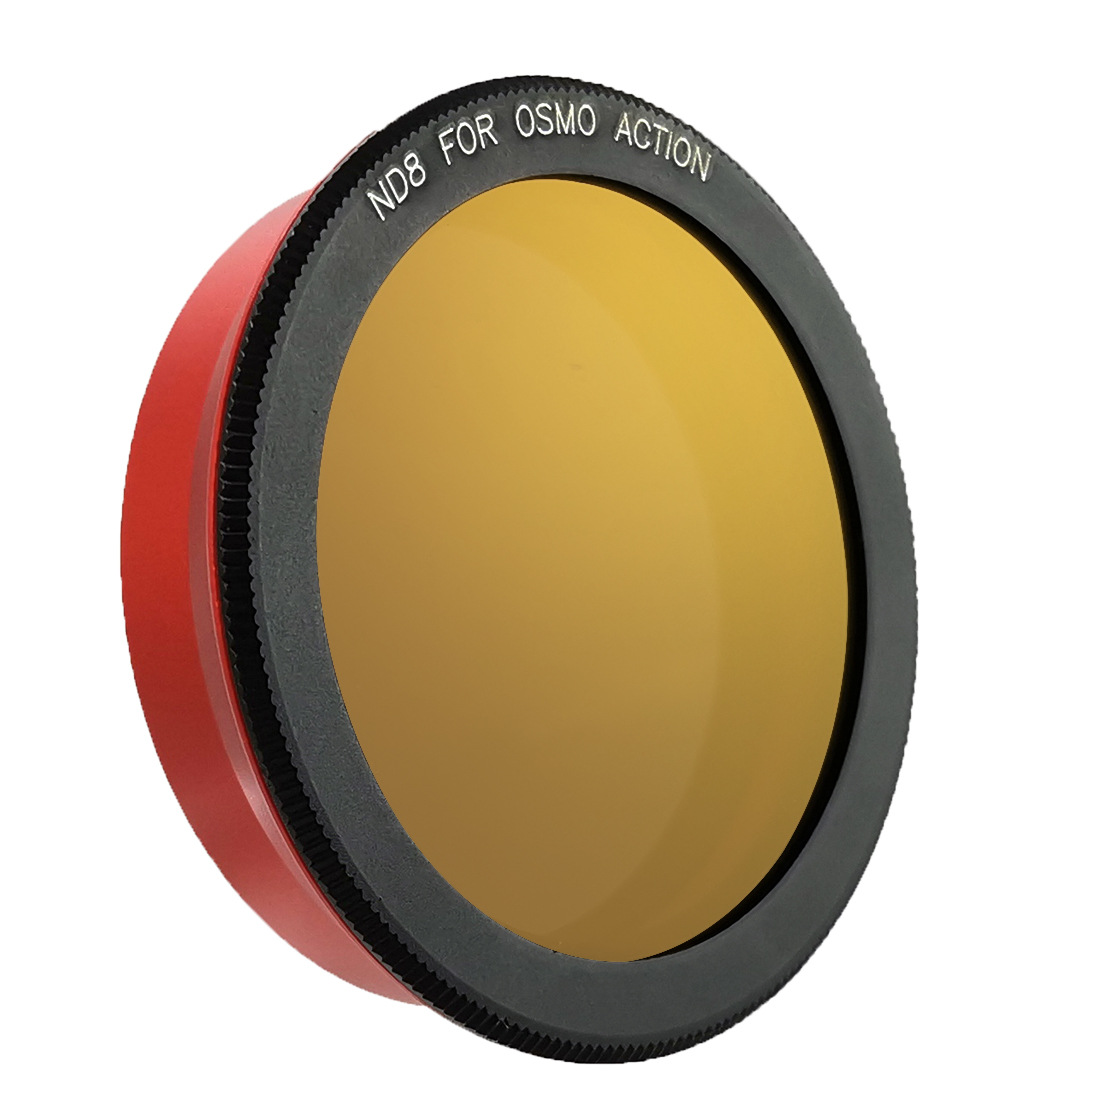 Camera Lens Filter for DJI Osmo Action Cameras UV CPL Lens High Light Transmittance Low Reflectance ND8 lens filter